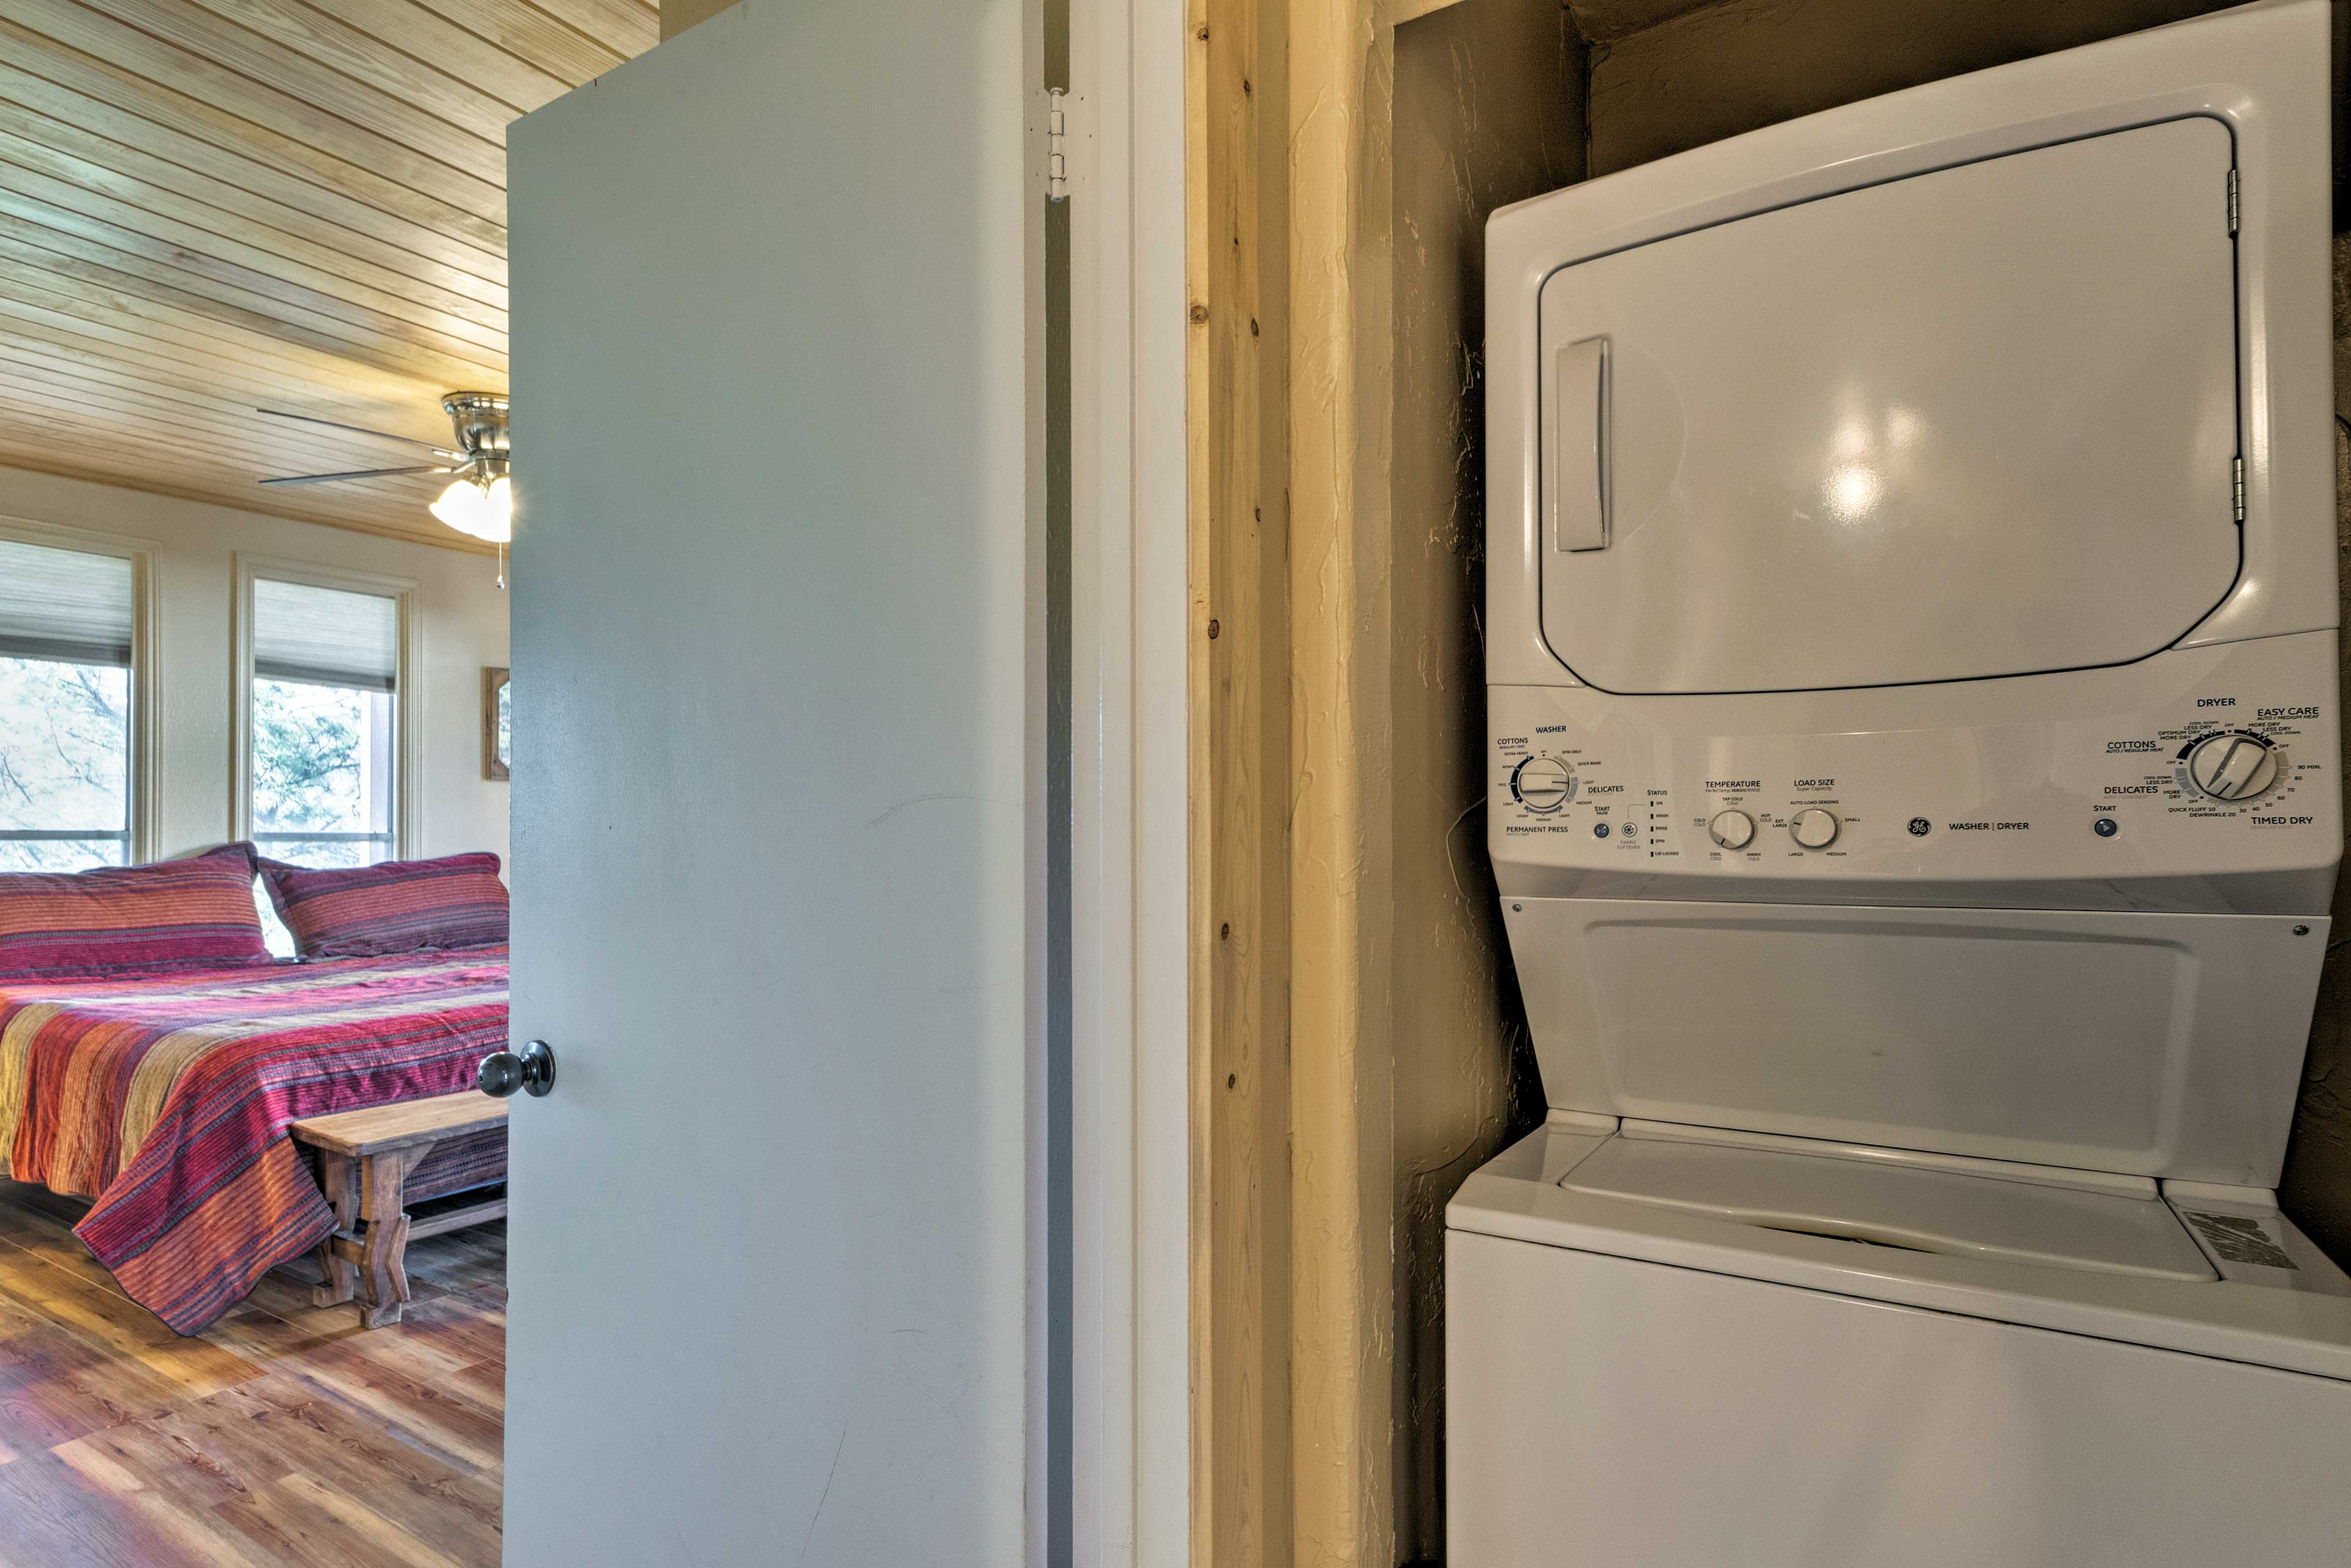 There are 2 sets of in-unit laundry machines in the condo.